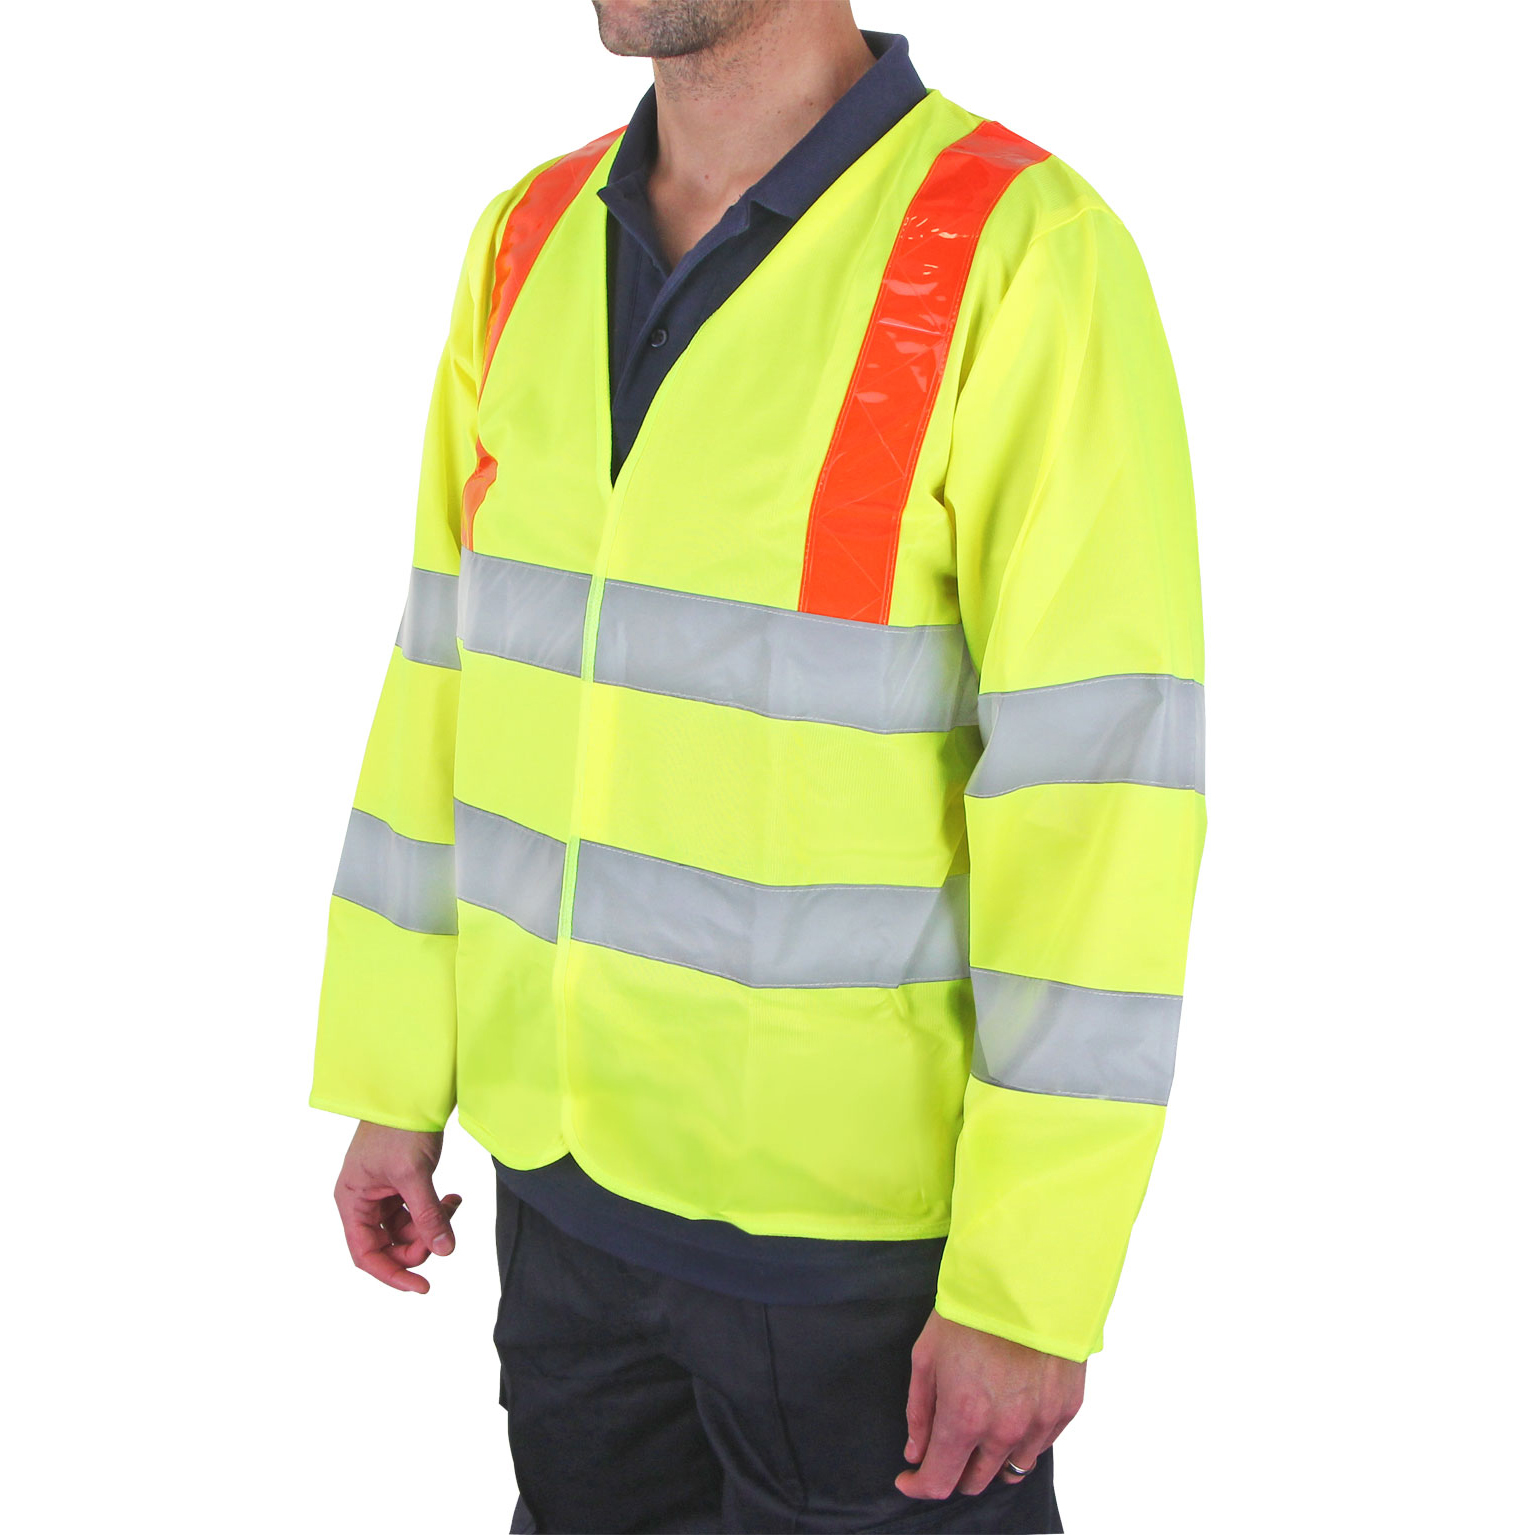 Jerkins B-Seen High Visibility Long Sleeved Jerkin XL Saturn Yellow/Red Ref PKJENG(RT)XL *Up to 3 Day Leadtime*